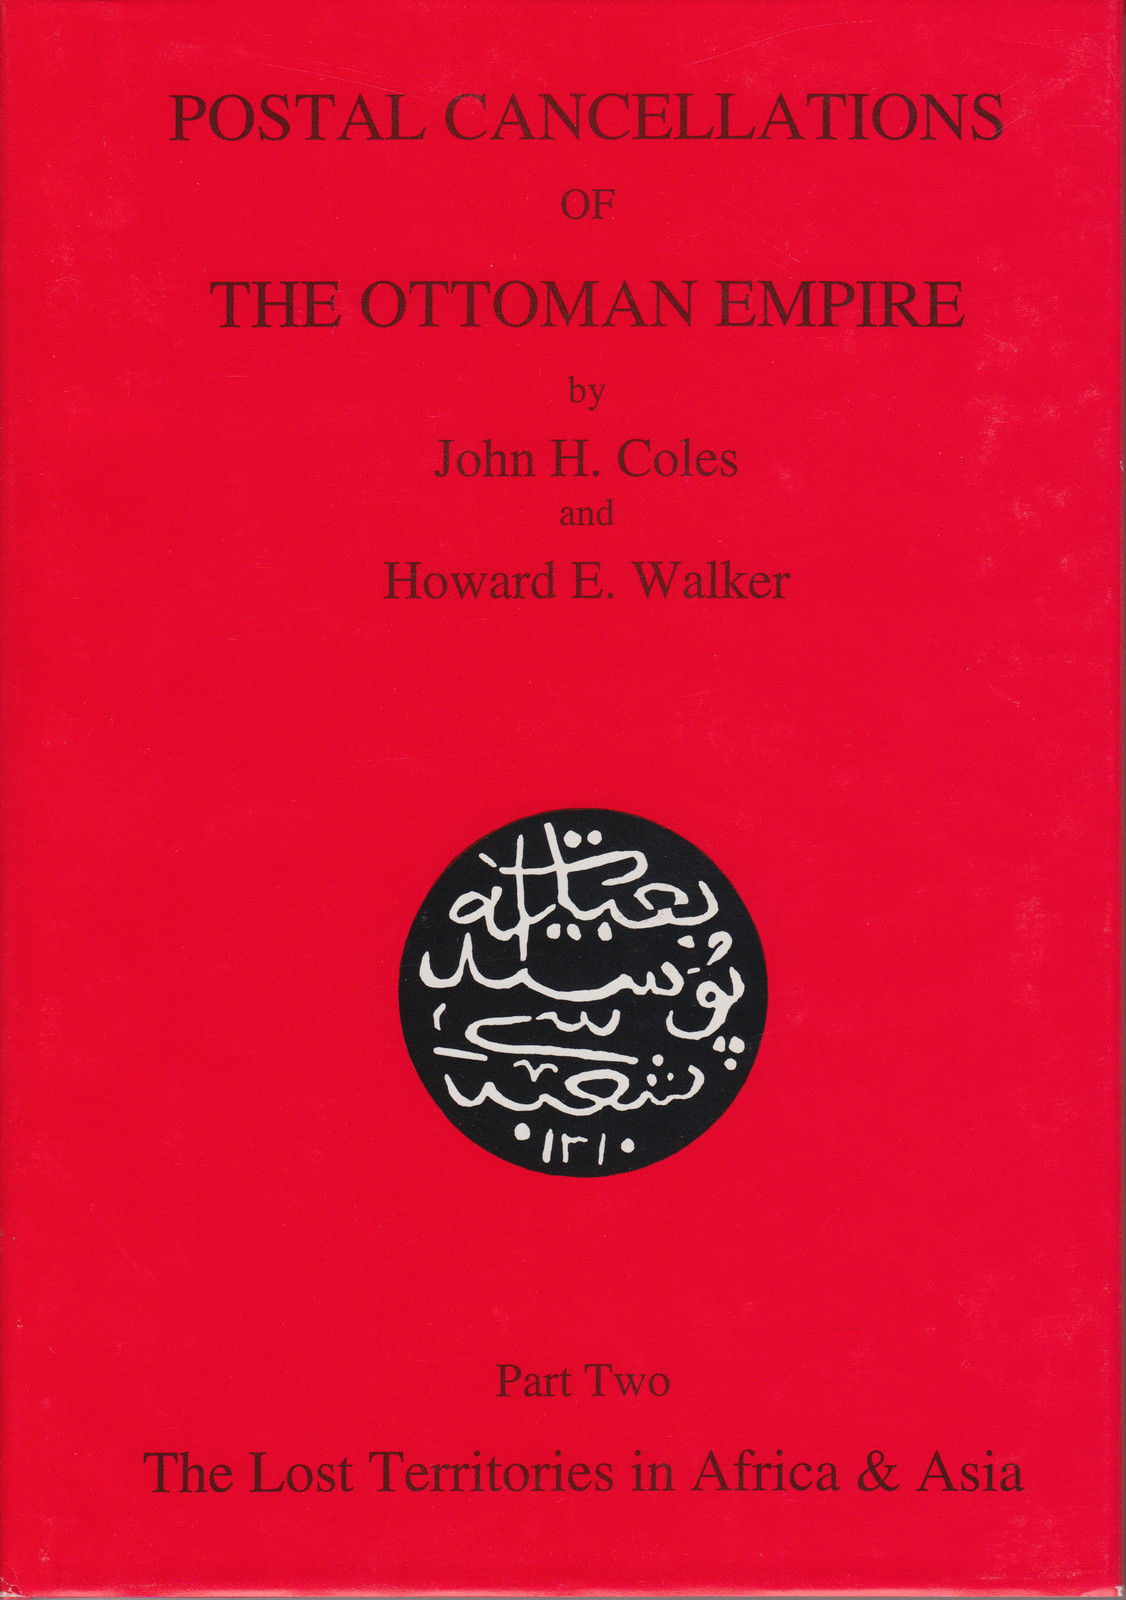 Postal Cancellations of the Ottoman Empire, Part 2, by Coles, Walker - Front - 400690705071